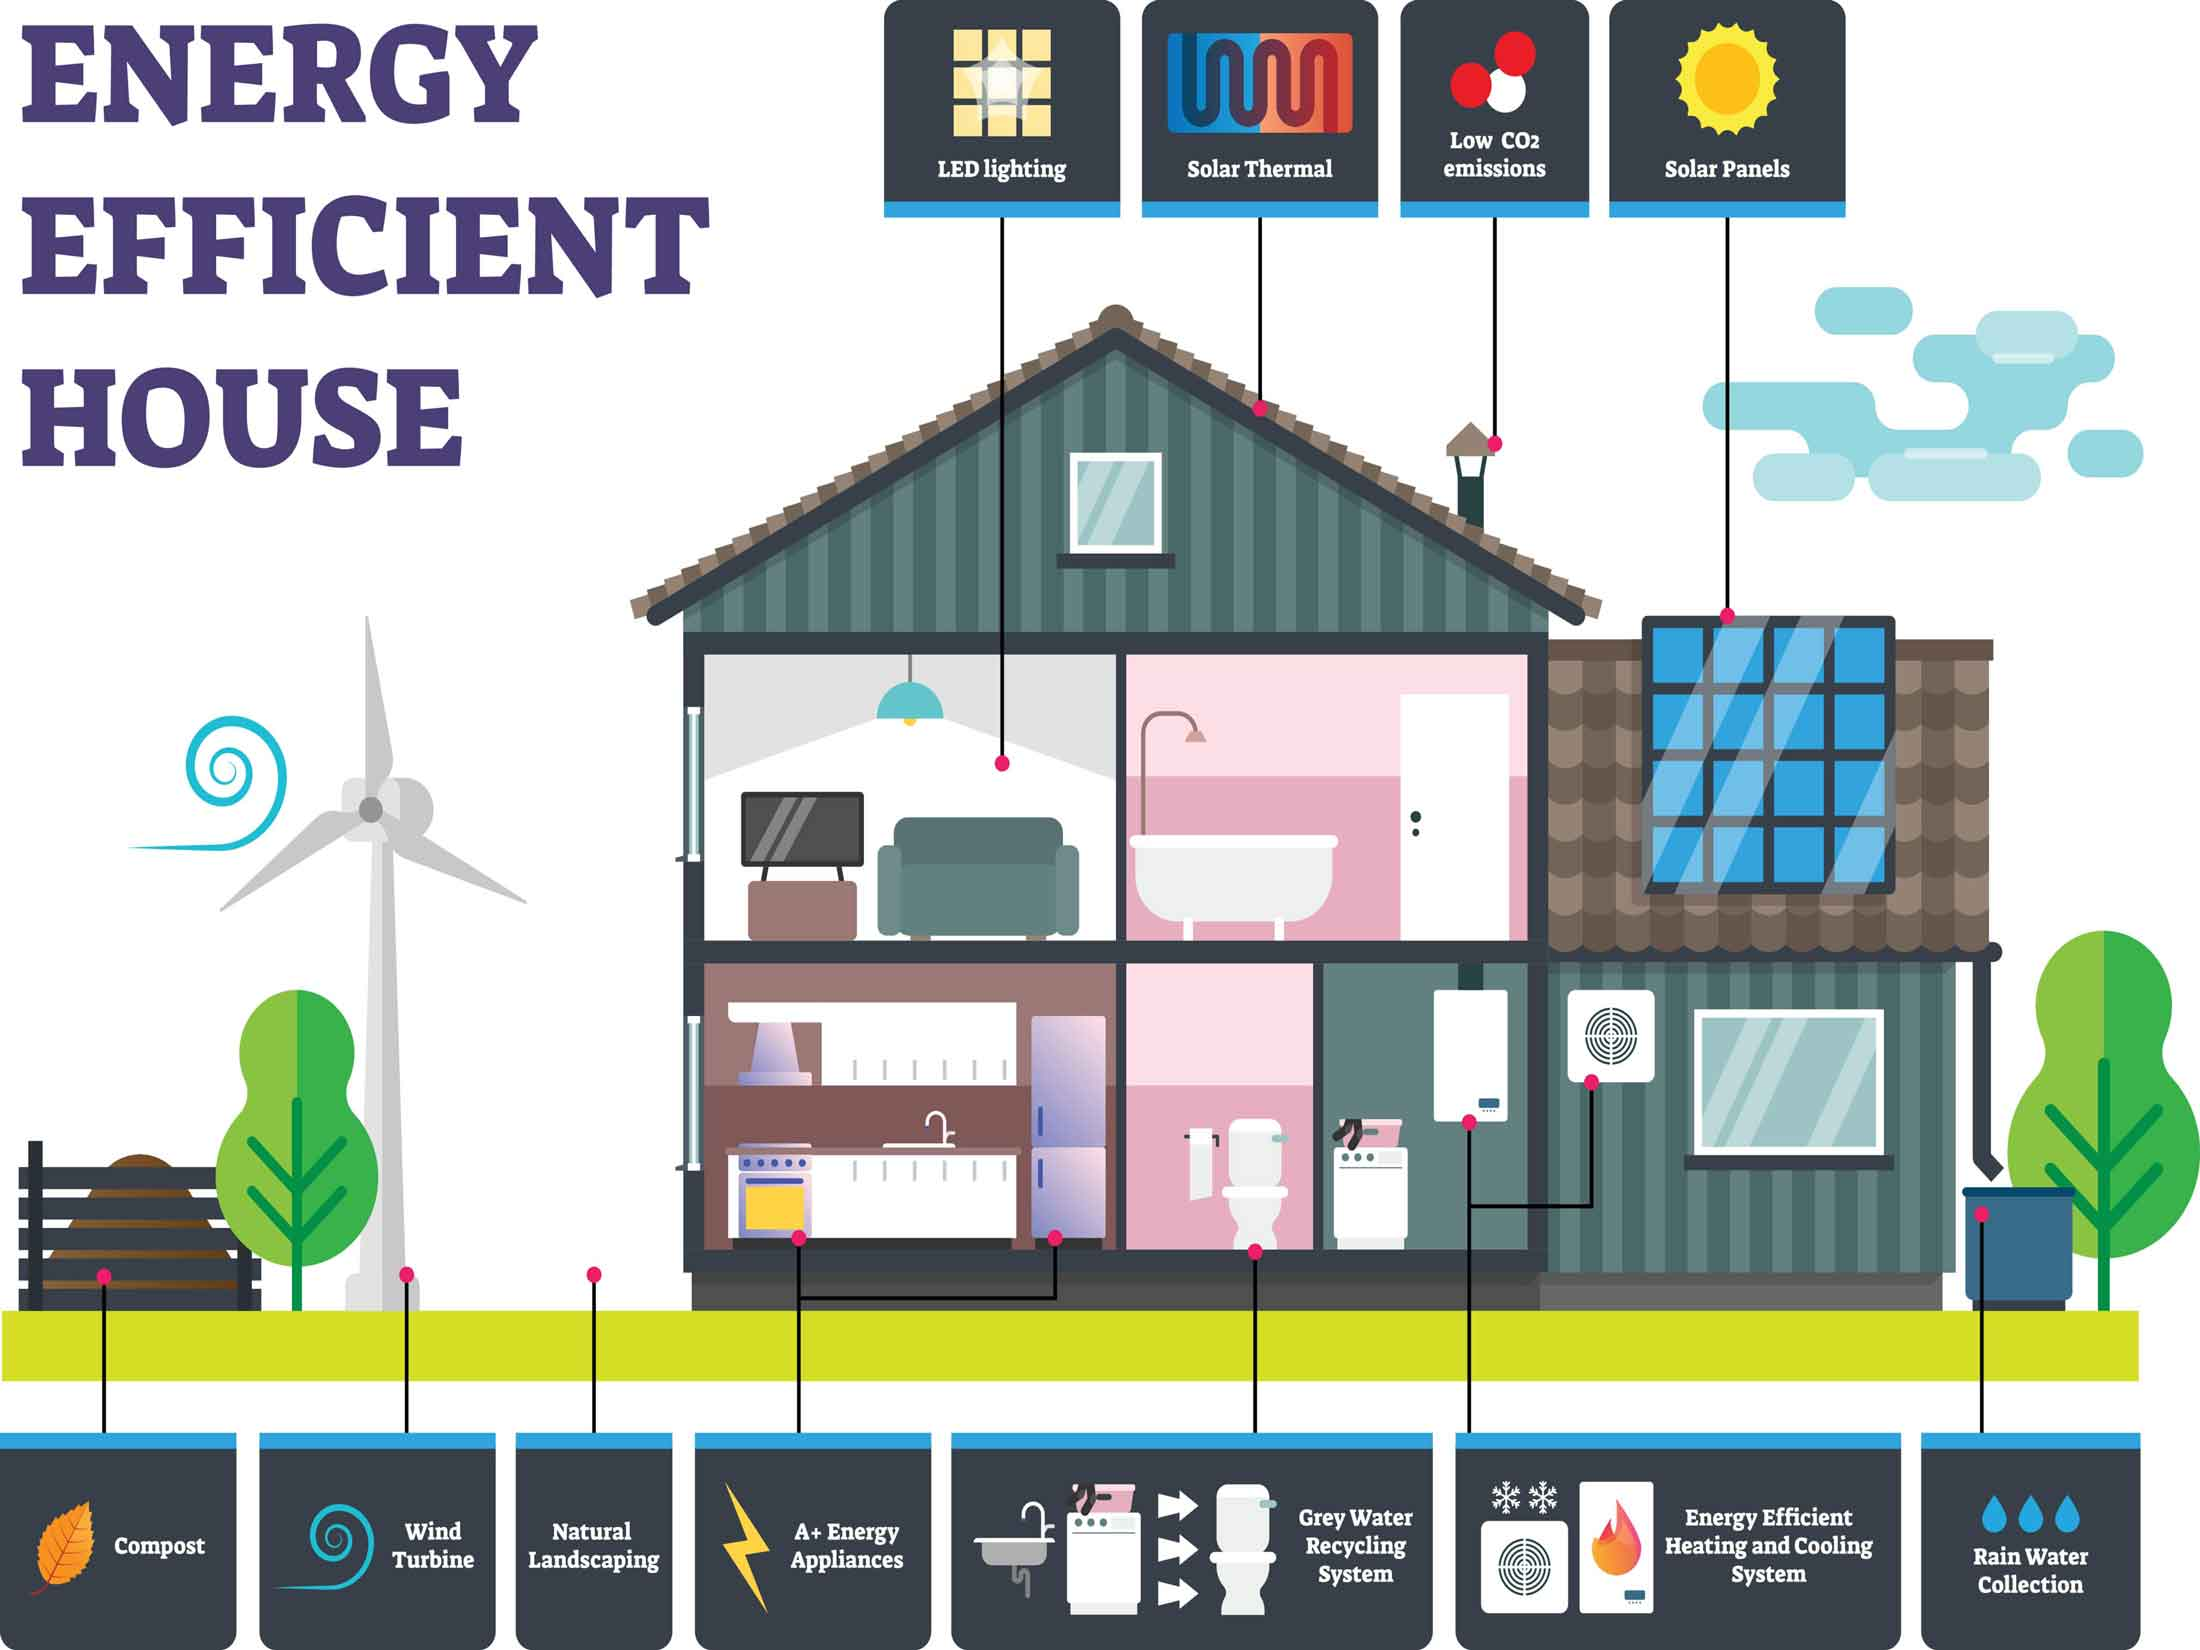 A diagram of an energy efficient house explaining all the renewable energy systems available